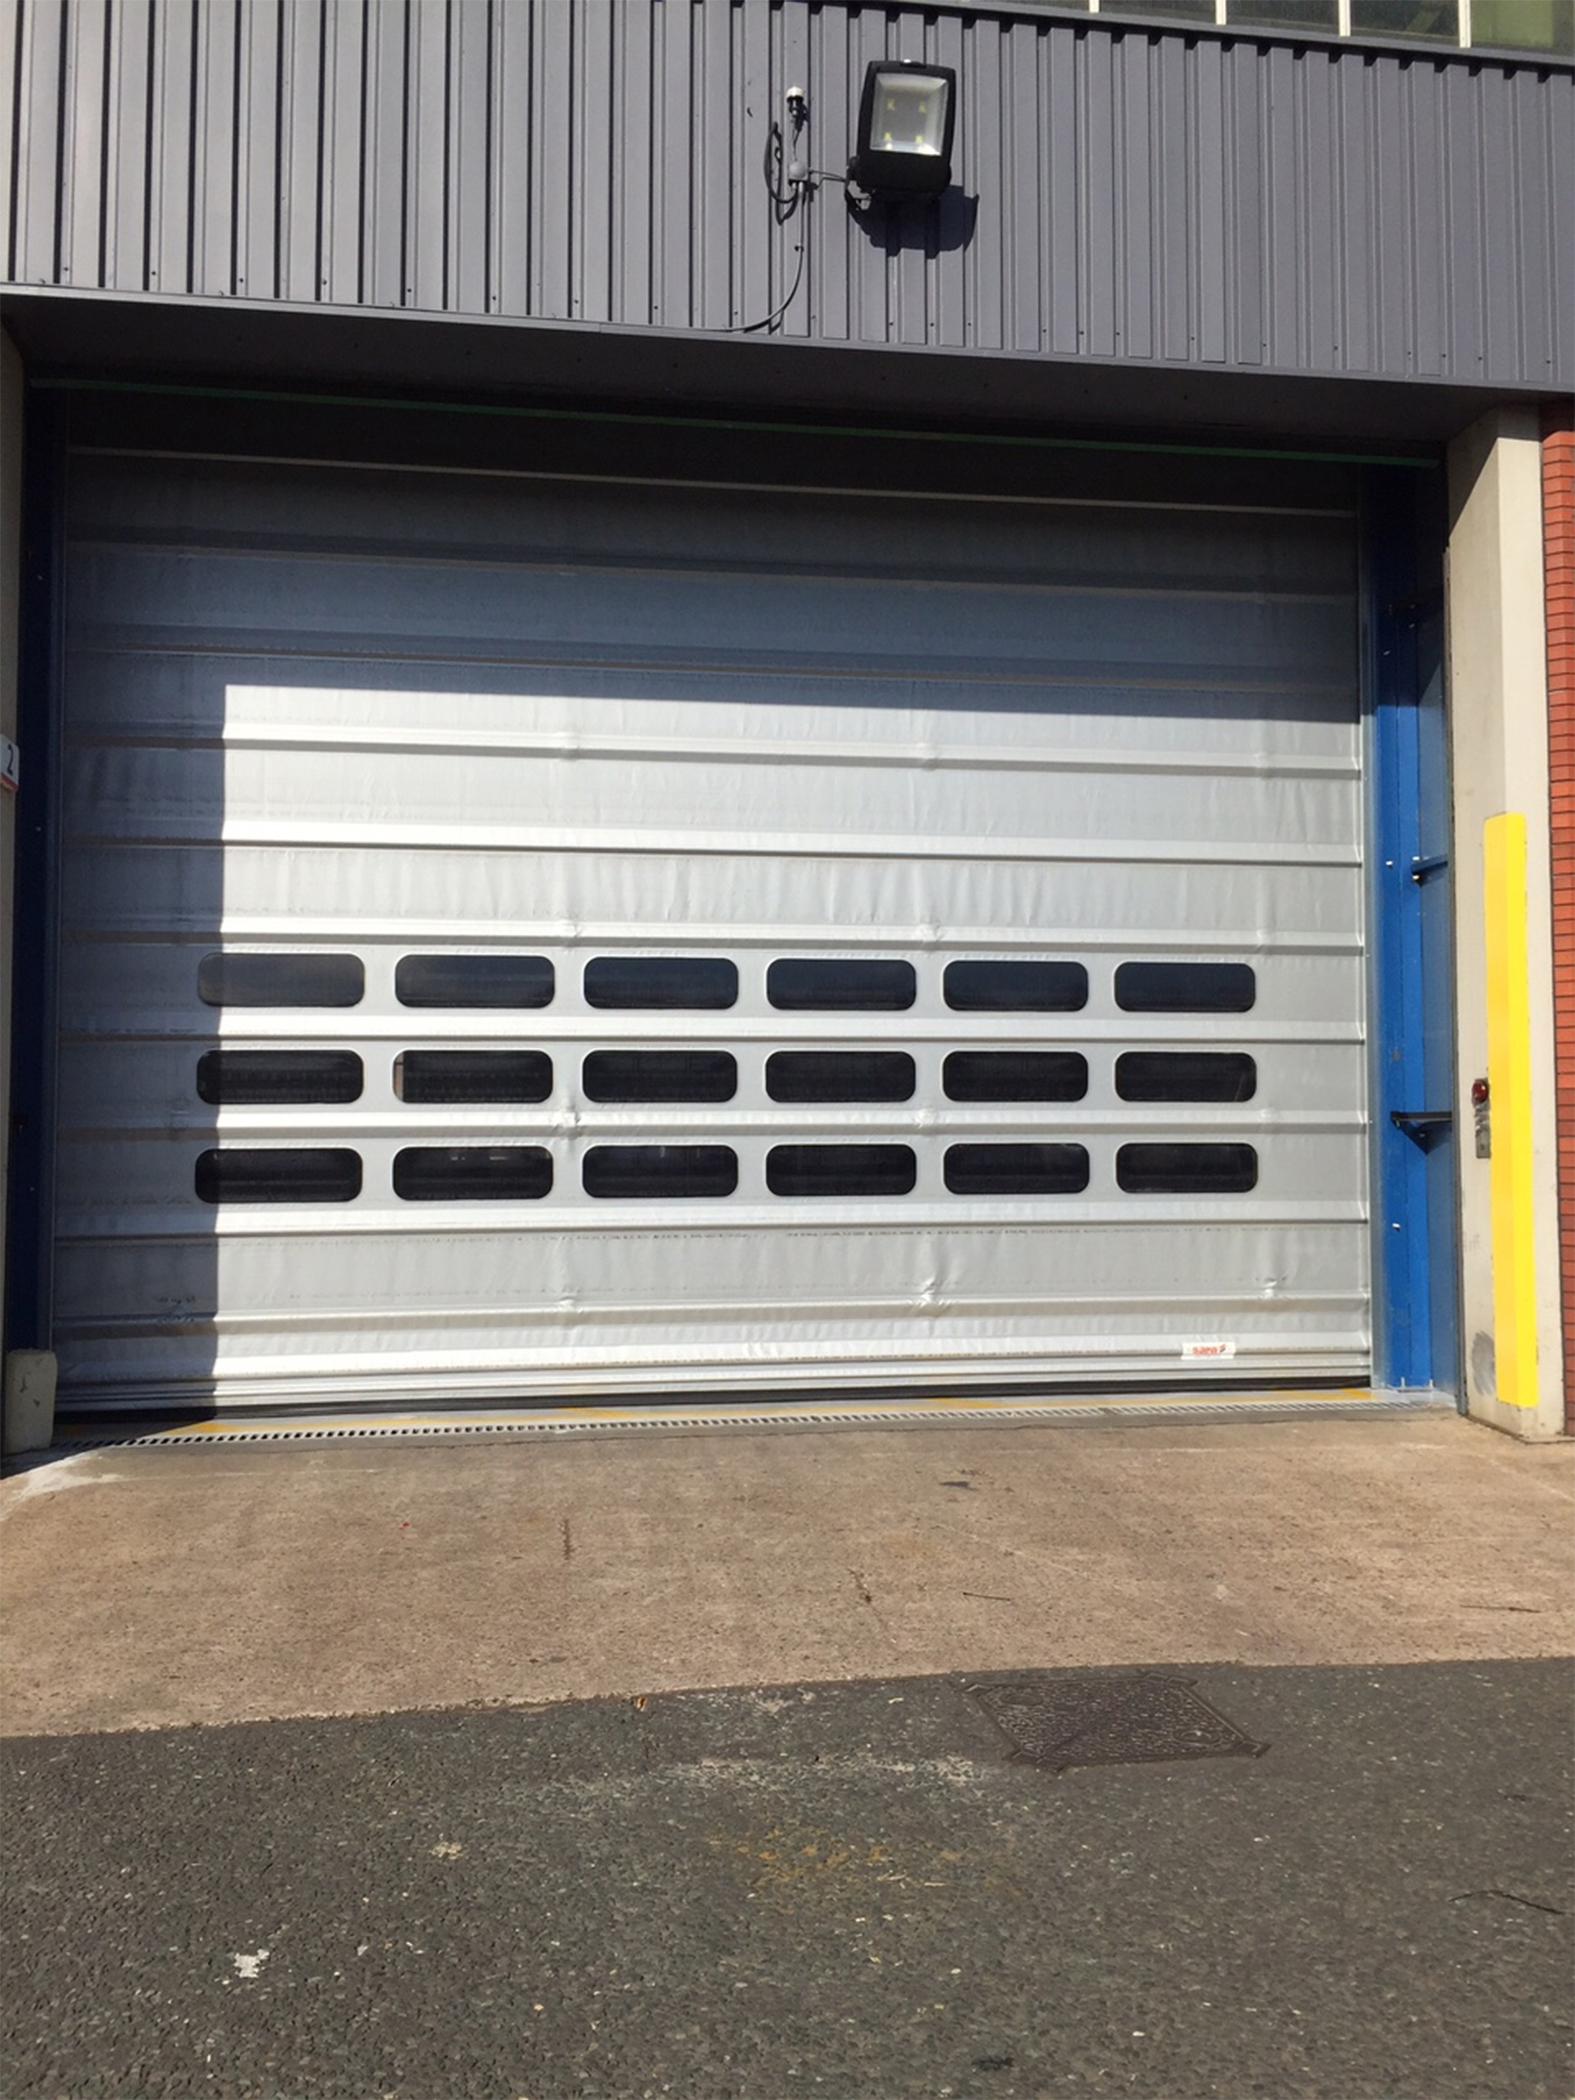 Extra wide automatic doors help chassis builder improve energy management